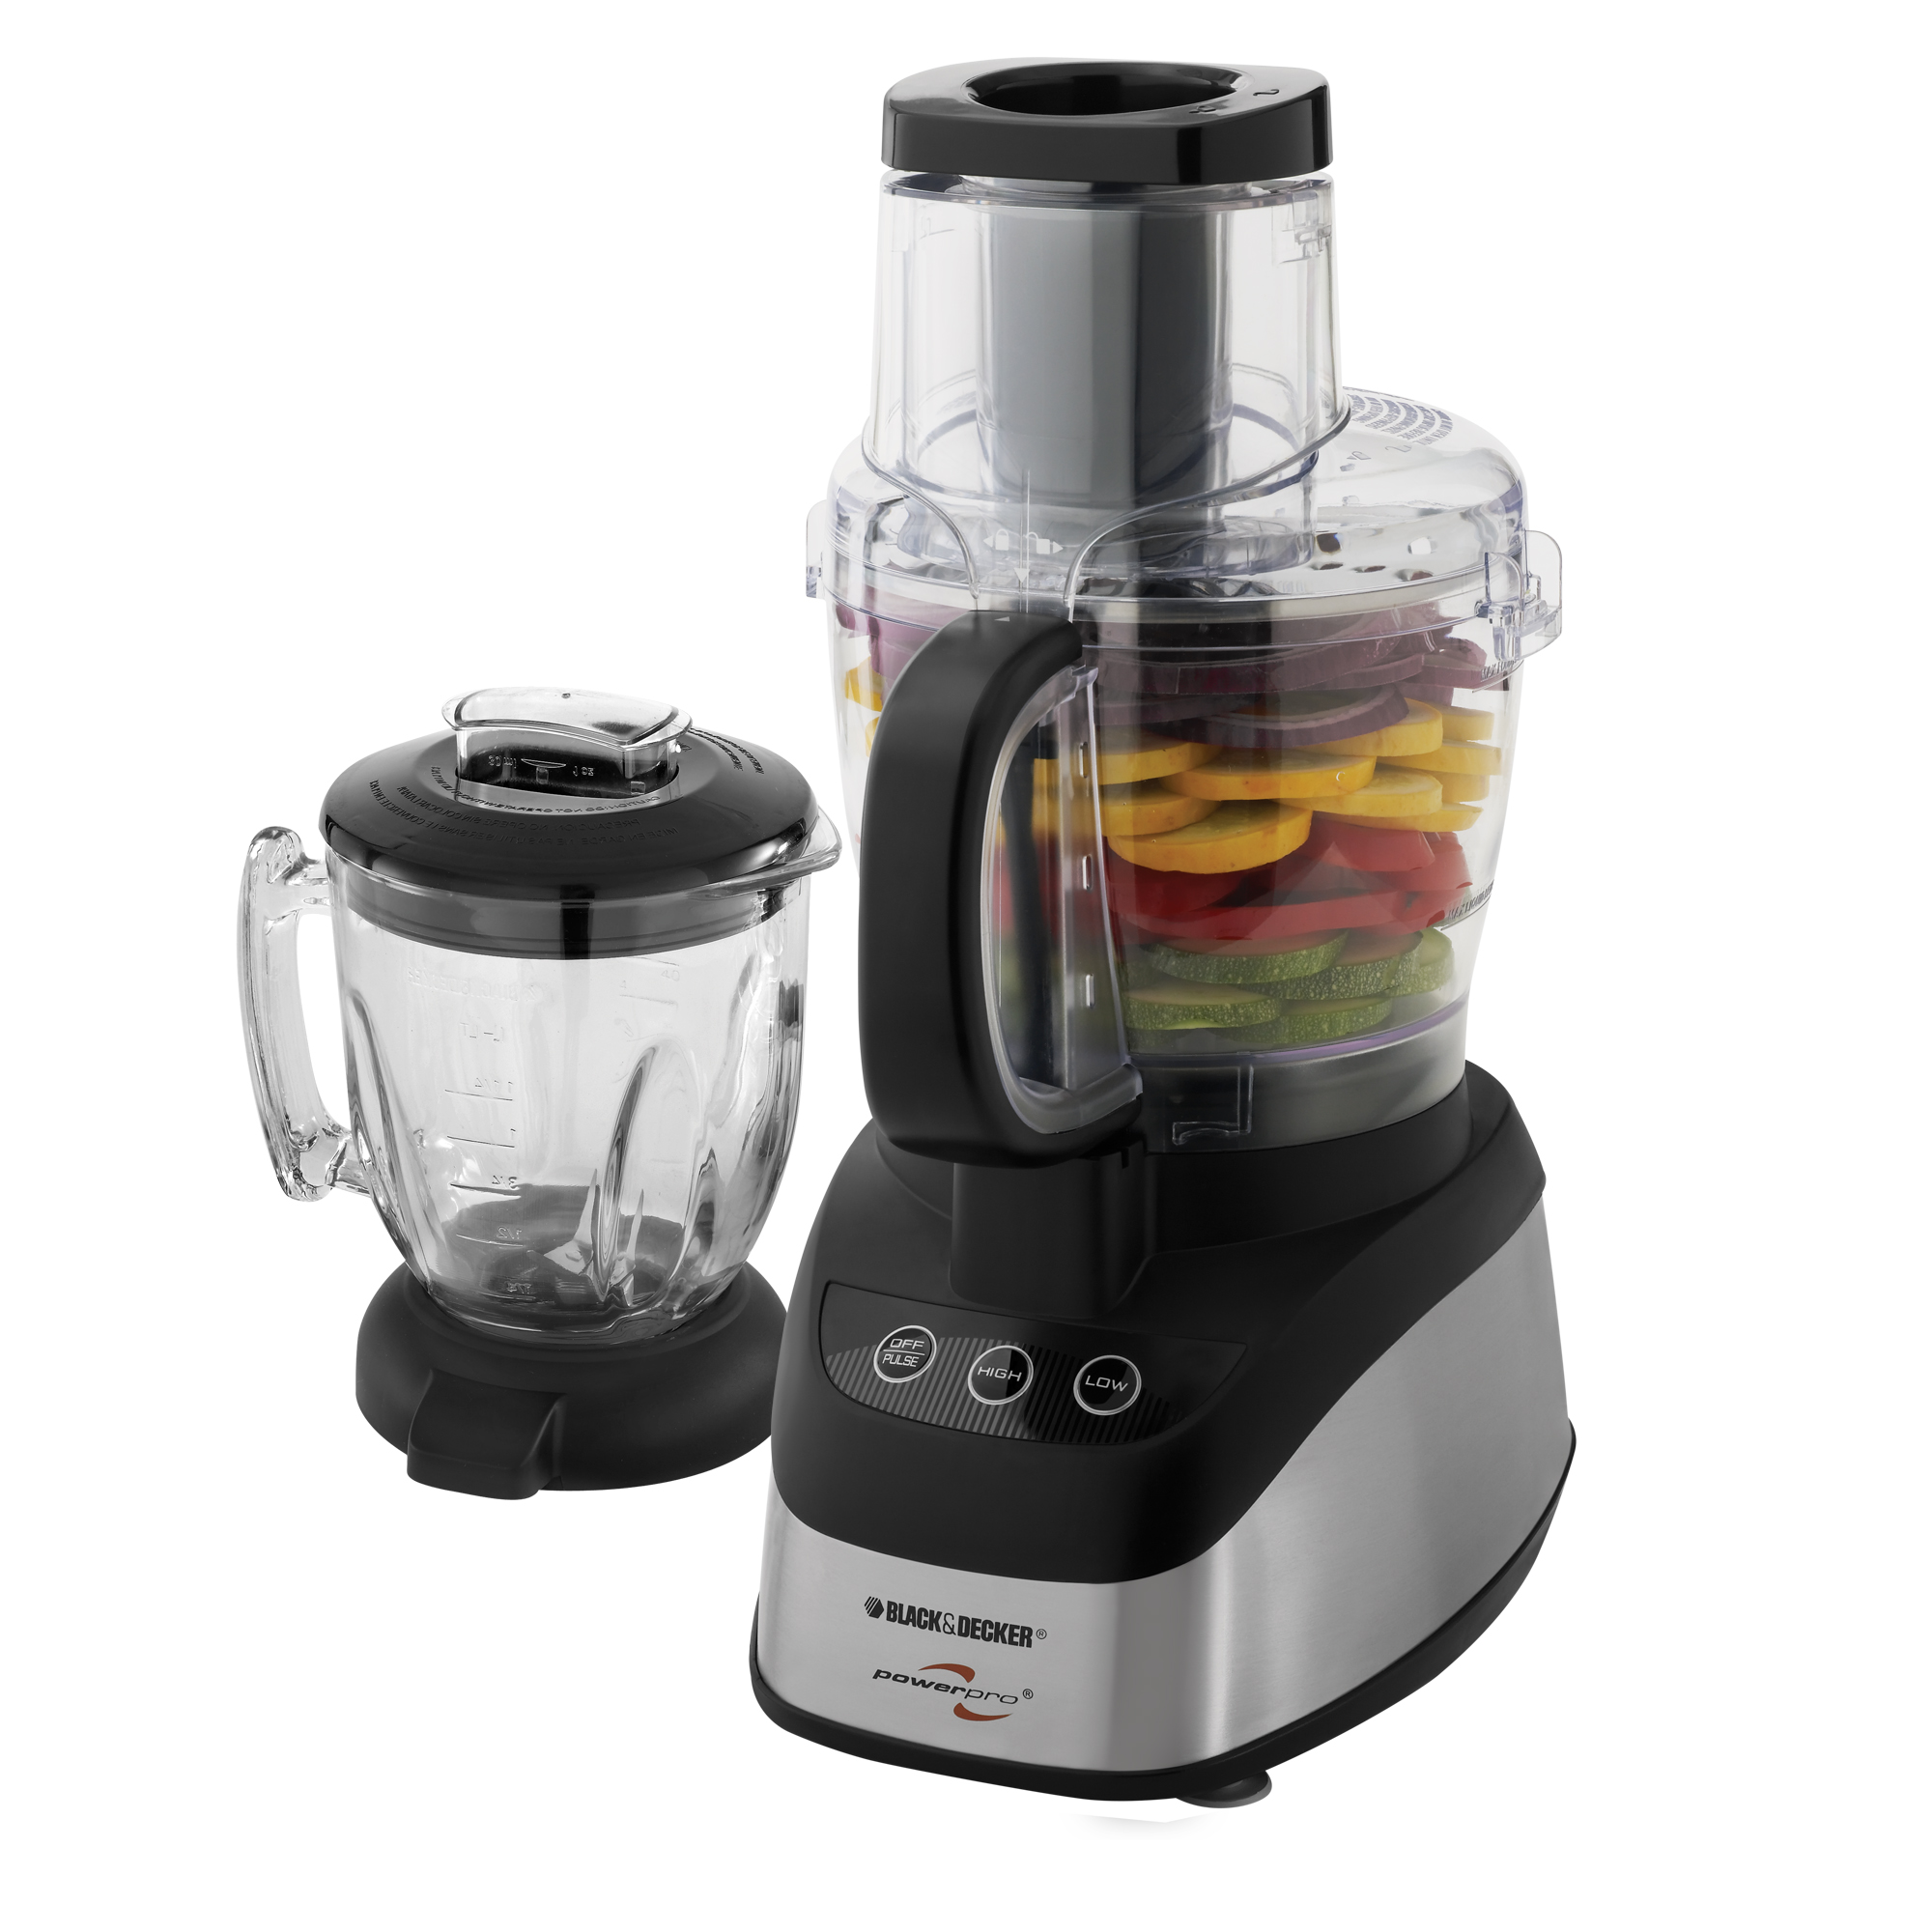 buy the powerpro food processor and blender black and decker rh blackanddeckerappliances com Blender Software Manual Hand Blender